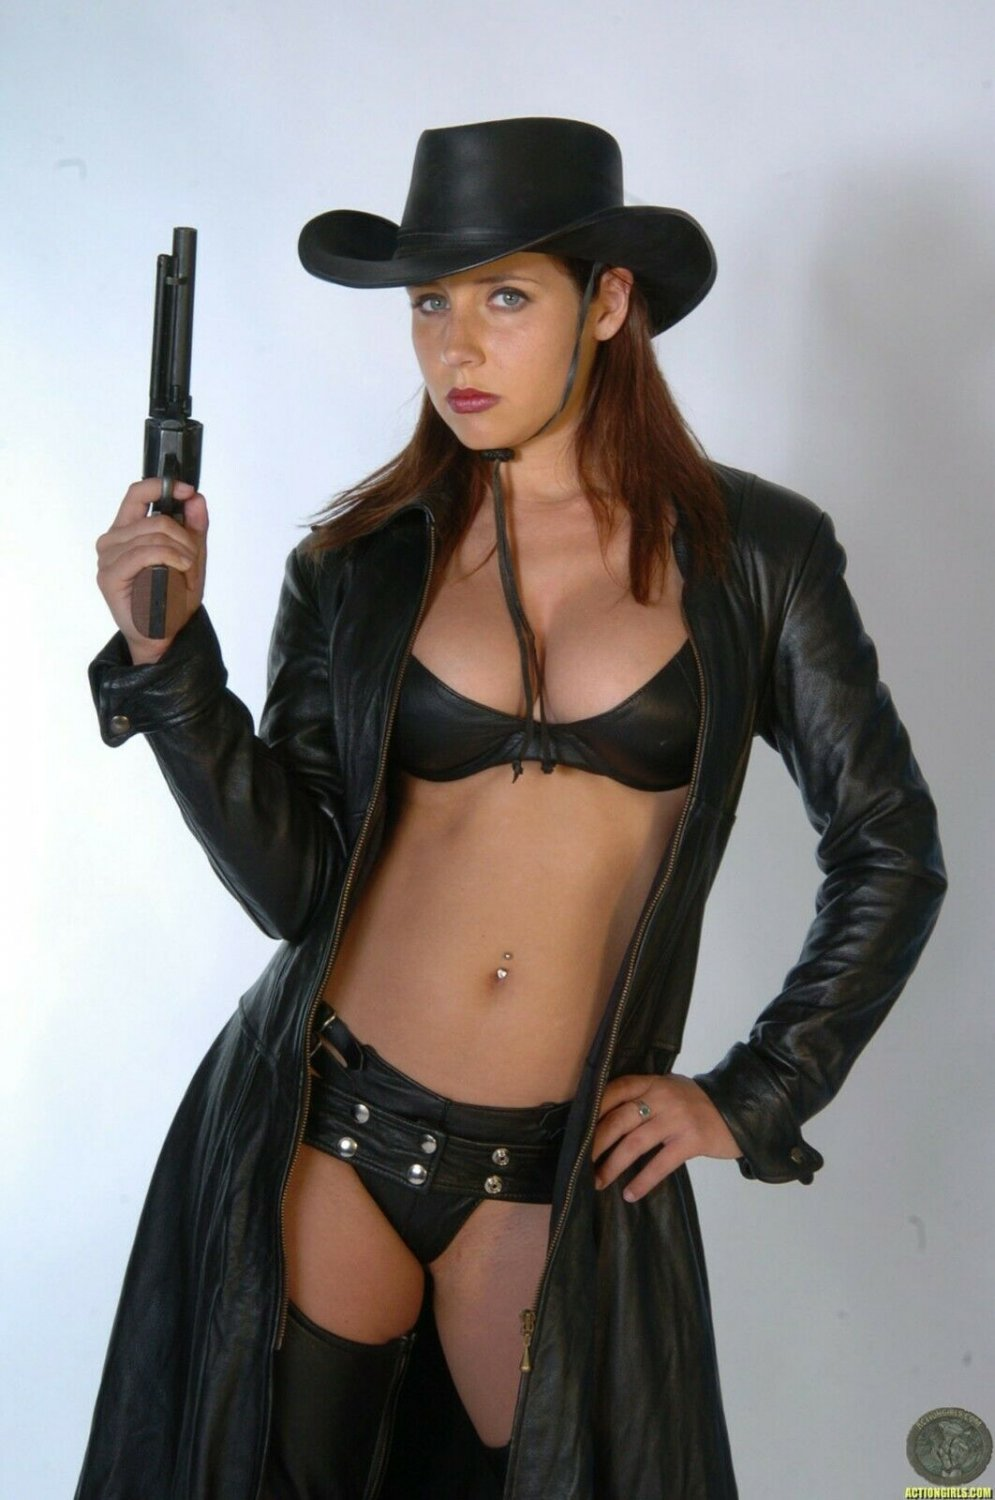 ERICA CAMPBELL Wild Old West American Frontier / Glossy Finish Photo 8x10 No1